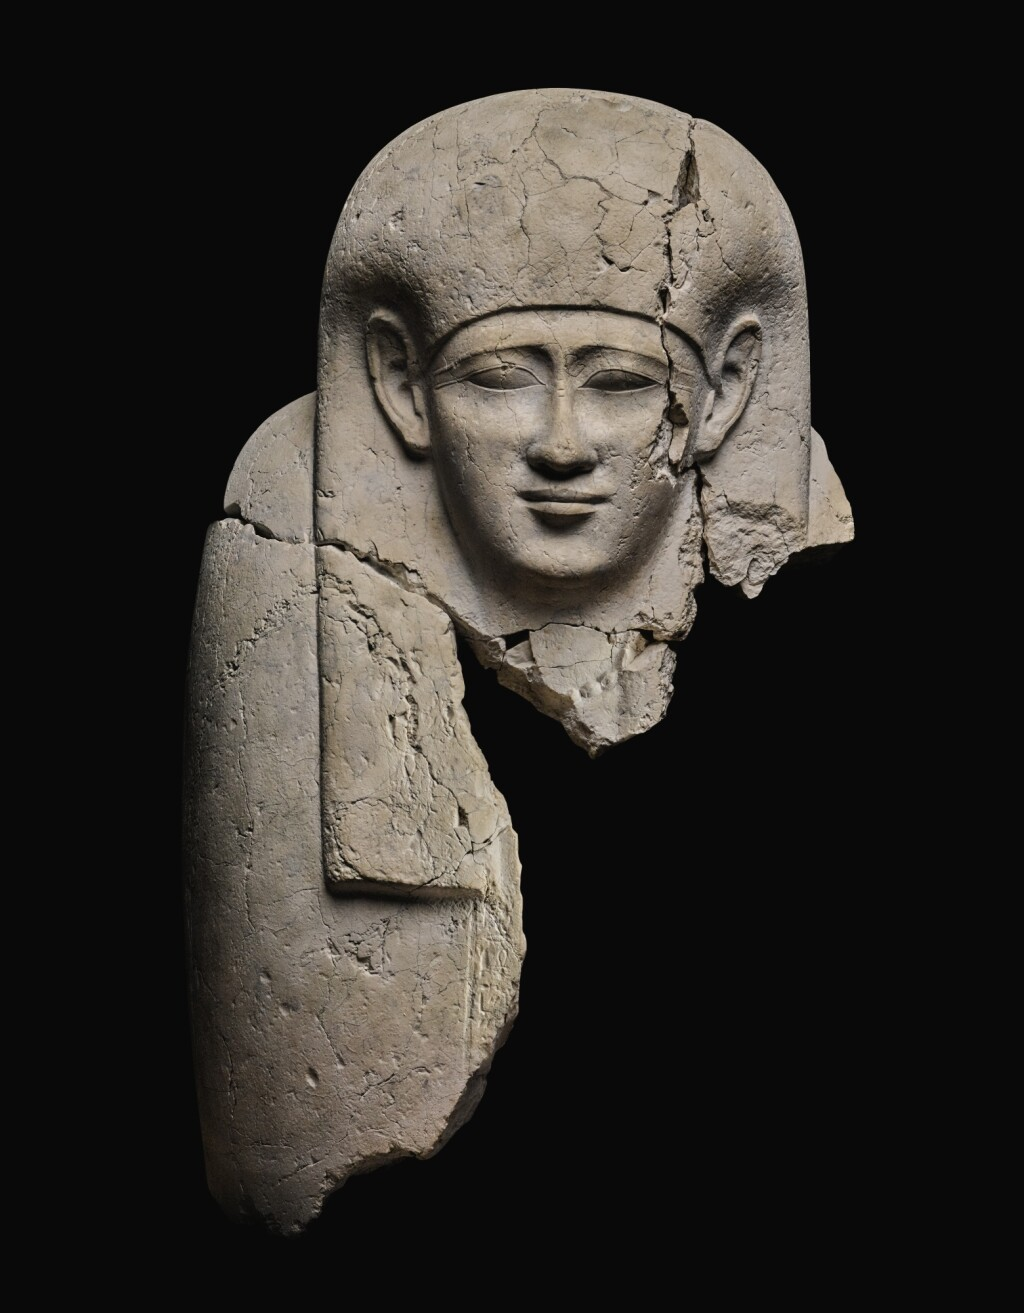 A FRAGMENTARY EGYPTIAN LIMESTONE SARCOPHAGUS LID, 30TH DYNASTY/EARLY PTOLEMAIC PERIOD, CIRCA 380-200 B.C.